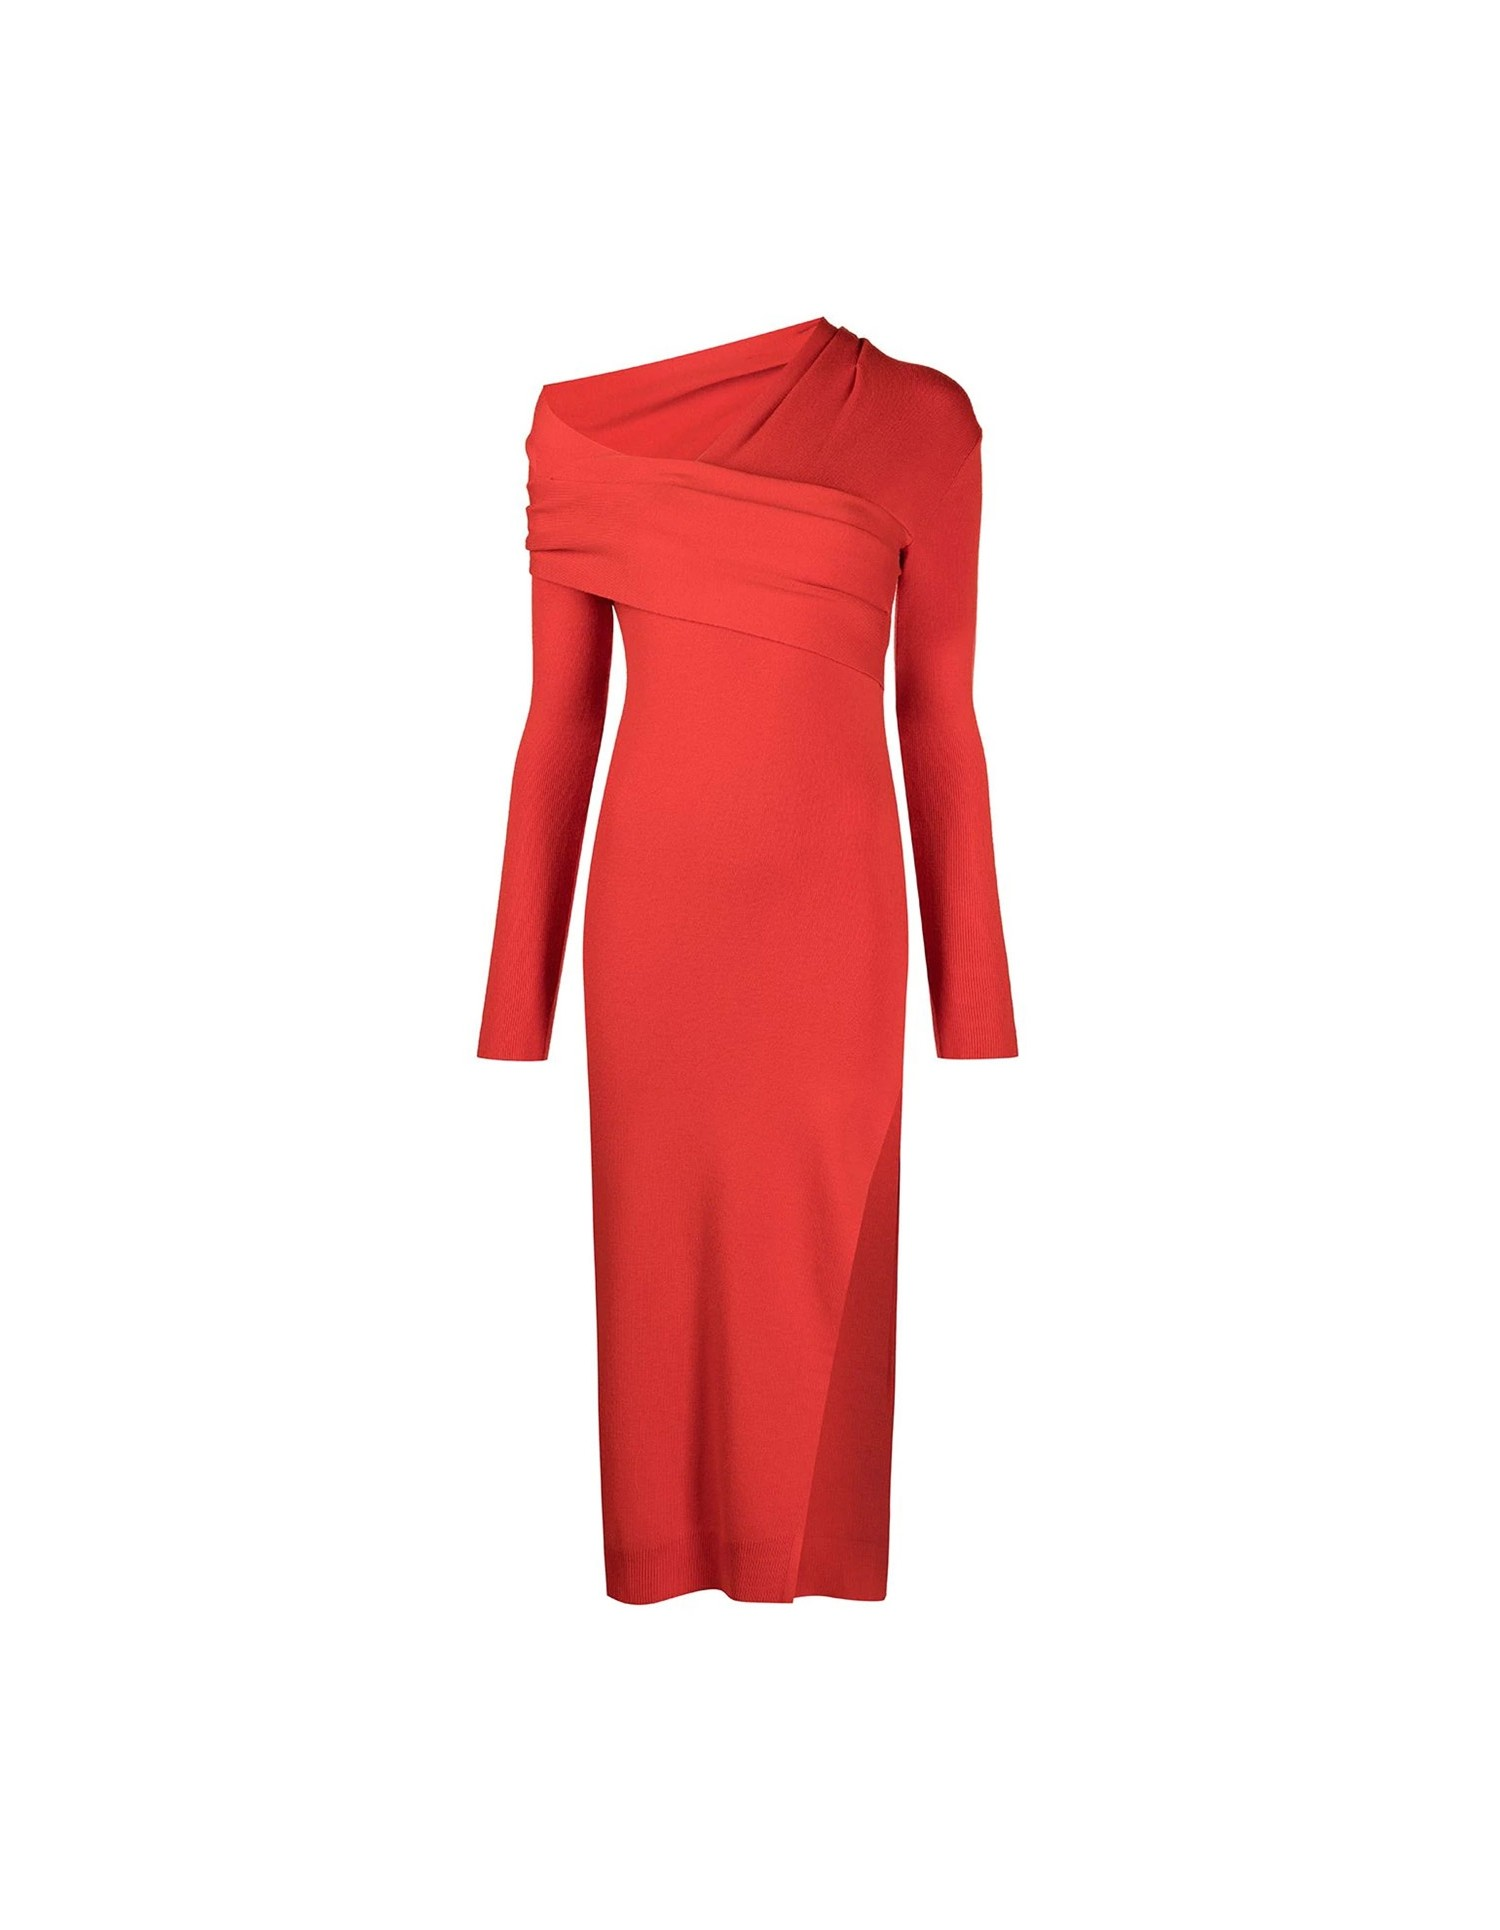 MONSE Twisted Wrap Collar Knit Dress in Code Red on Model No Background Front